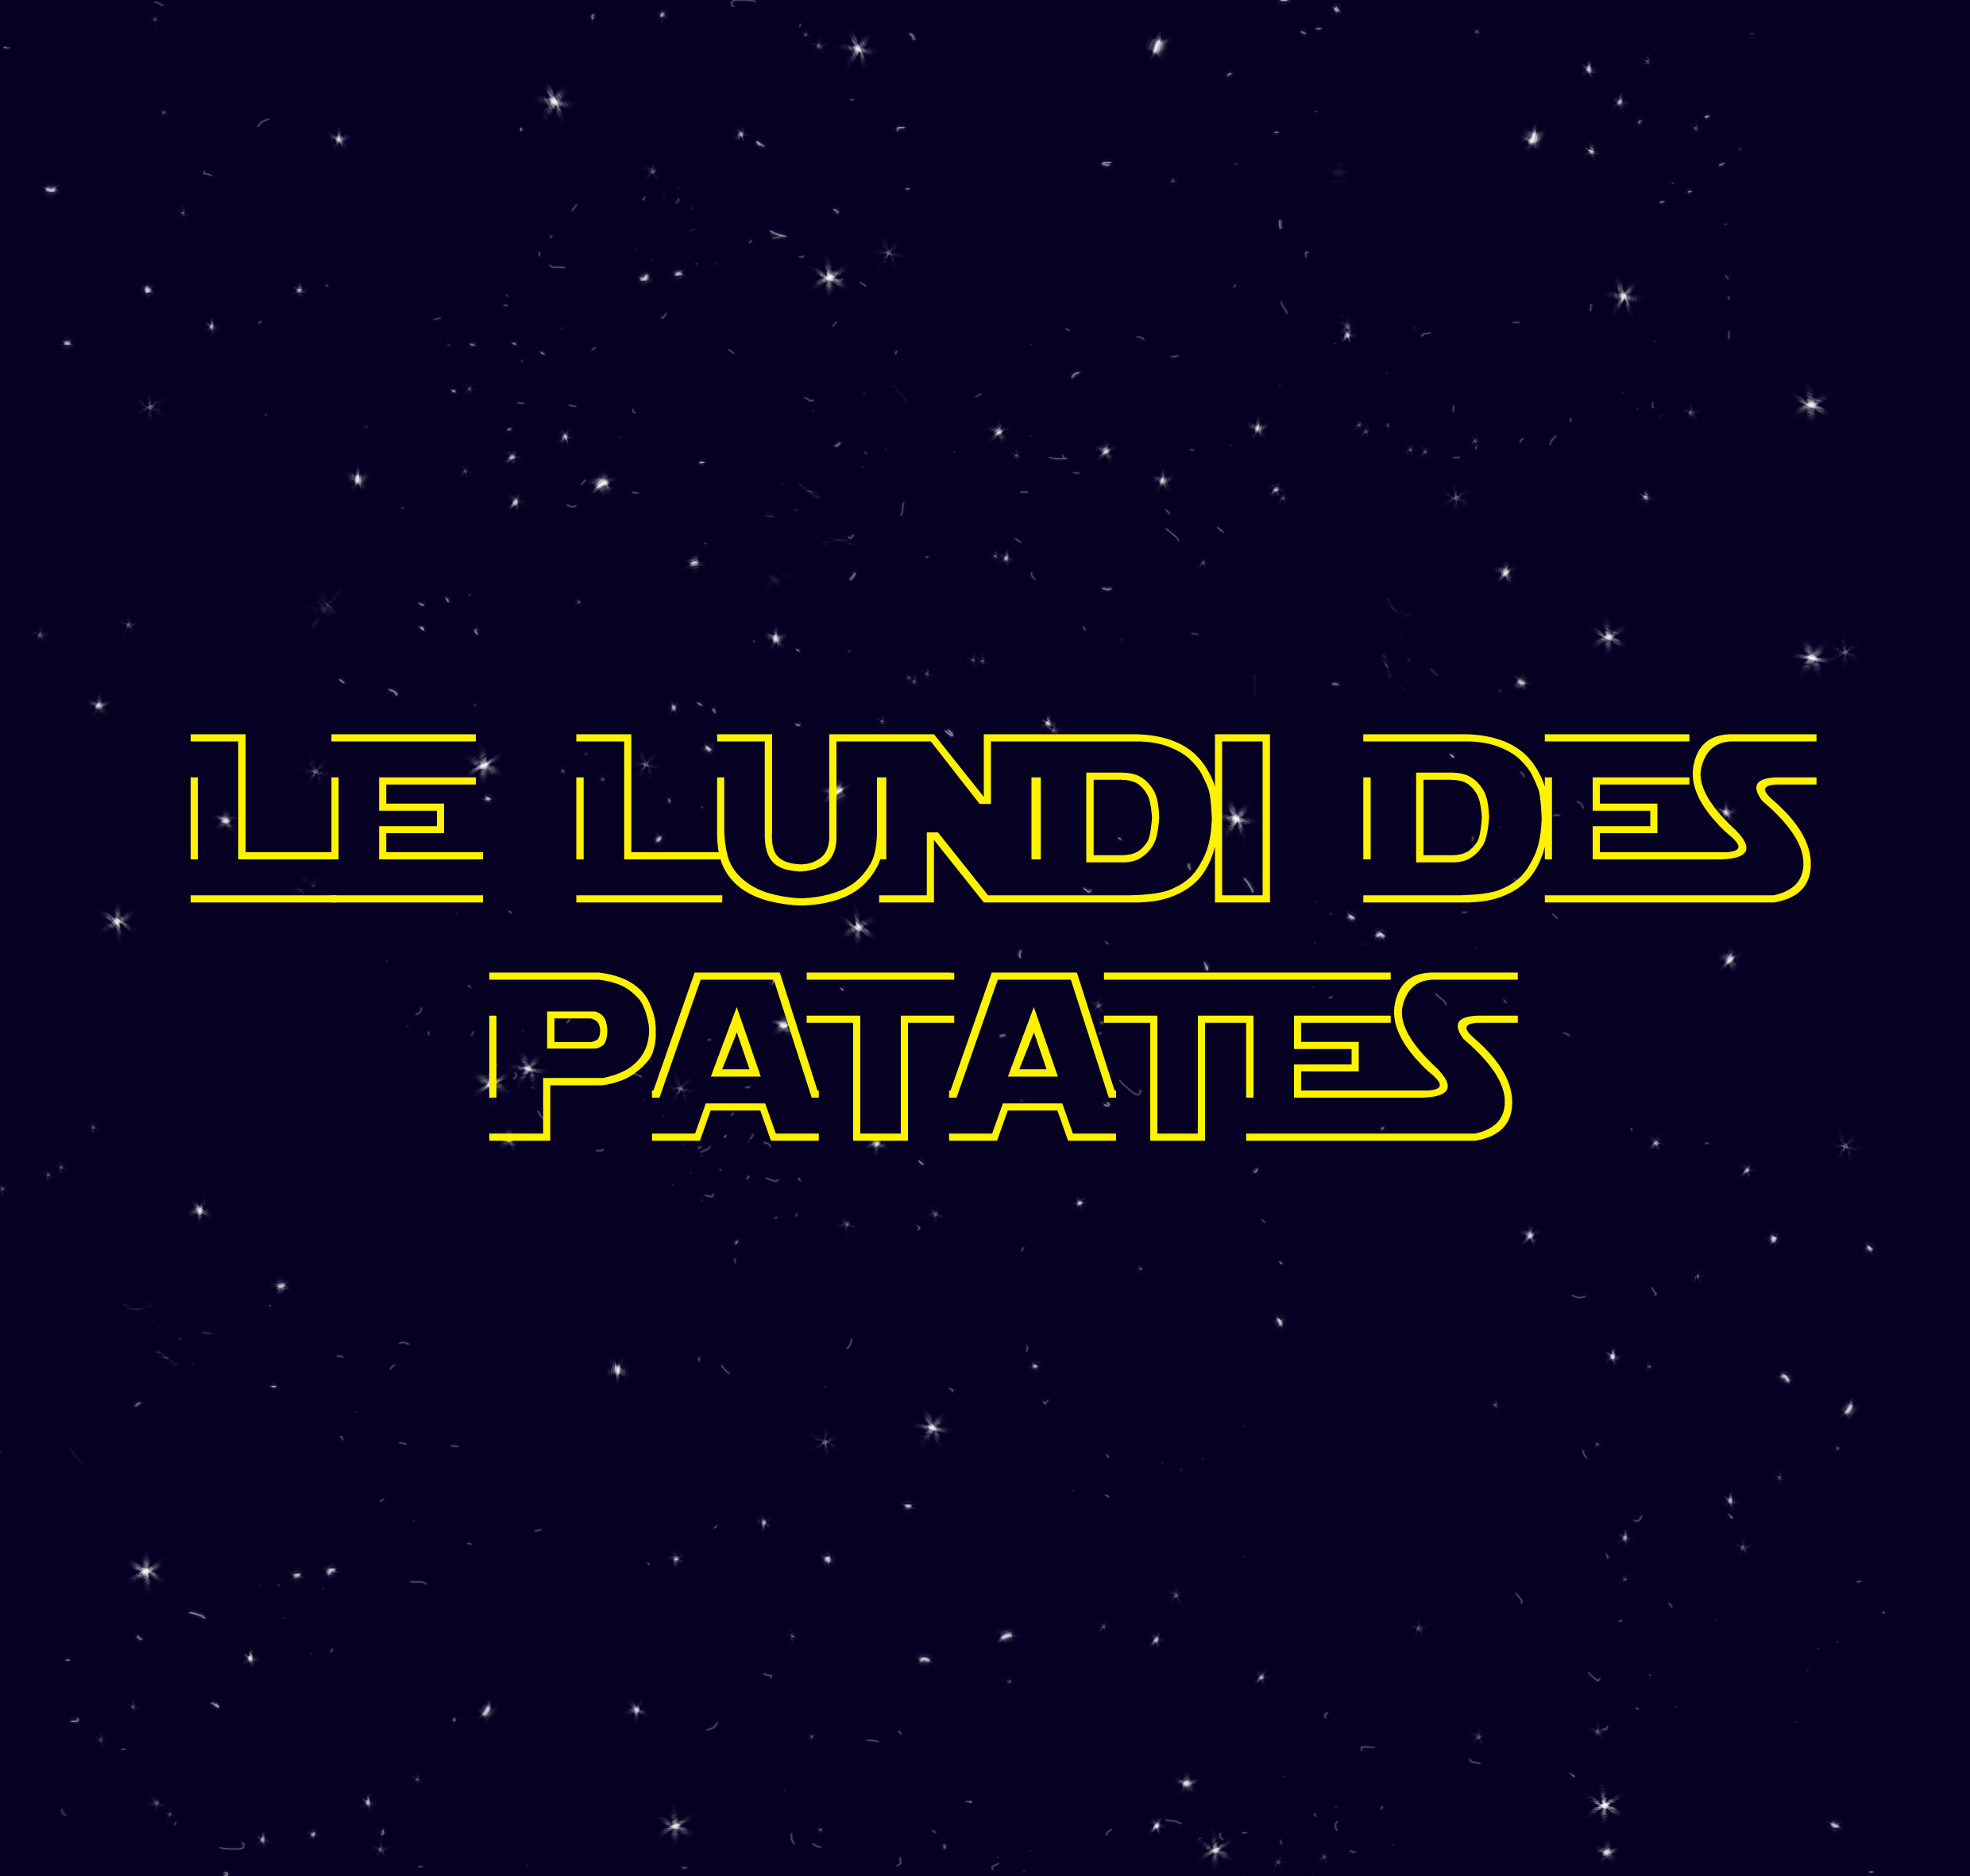 titre Star Wars Patate